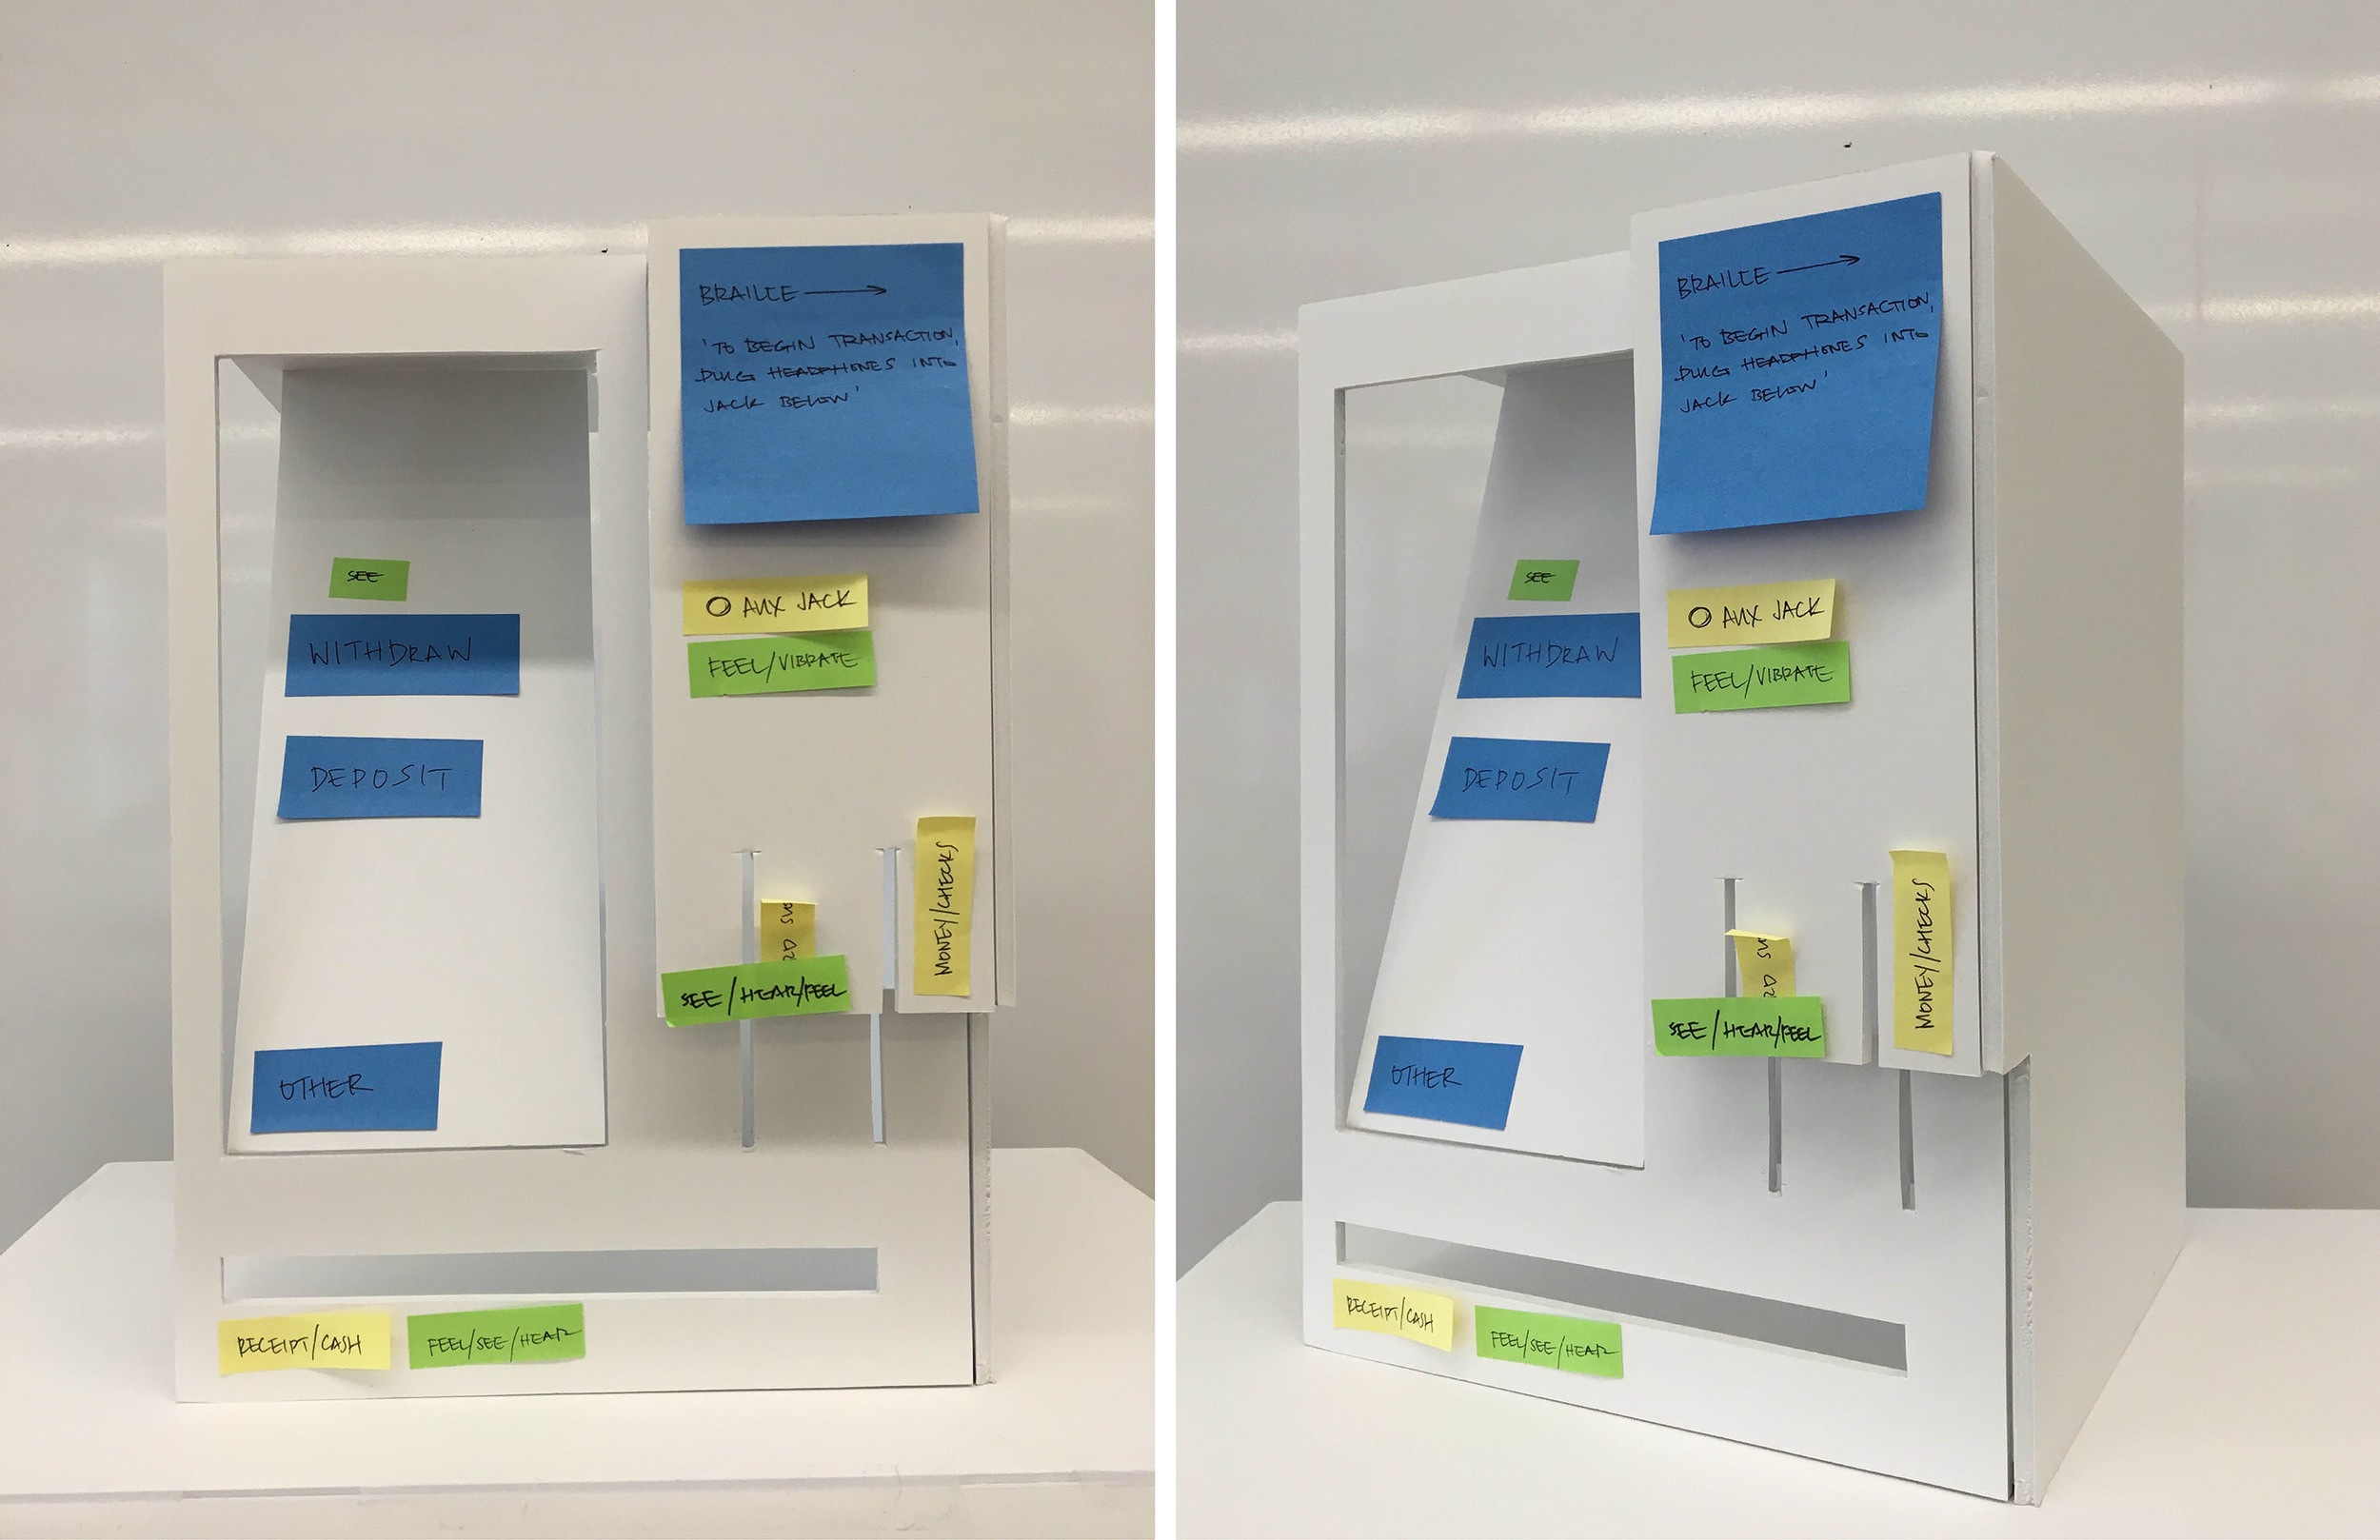 Preliminary Working Model  This model helped establish locations of ATM functions, first instant of clear separation of information input and output, and protruding right-hand pillar for blind compatibility. Most decisions are based on user testing, surveys, and human factors data.  Post Its are used to categorize types of sensory inputs and their respective locations to analyze blind-user functionality and possible control clusters for cohesive interaction